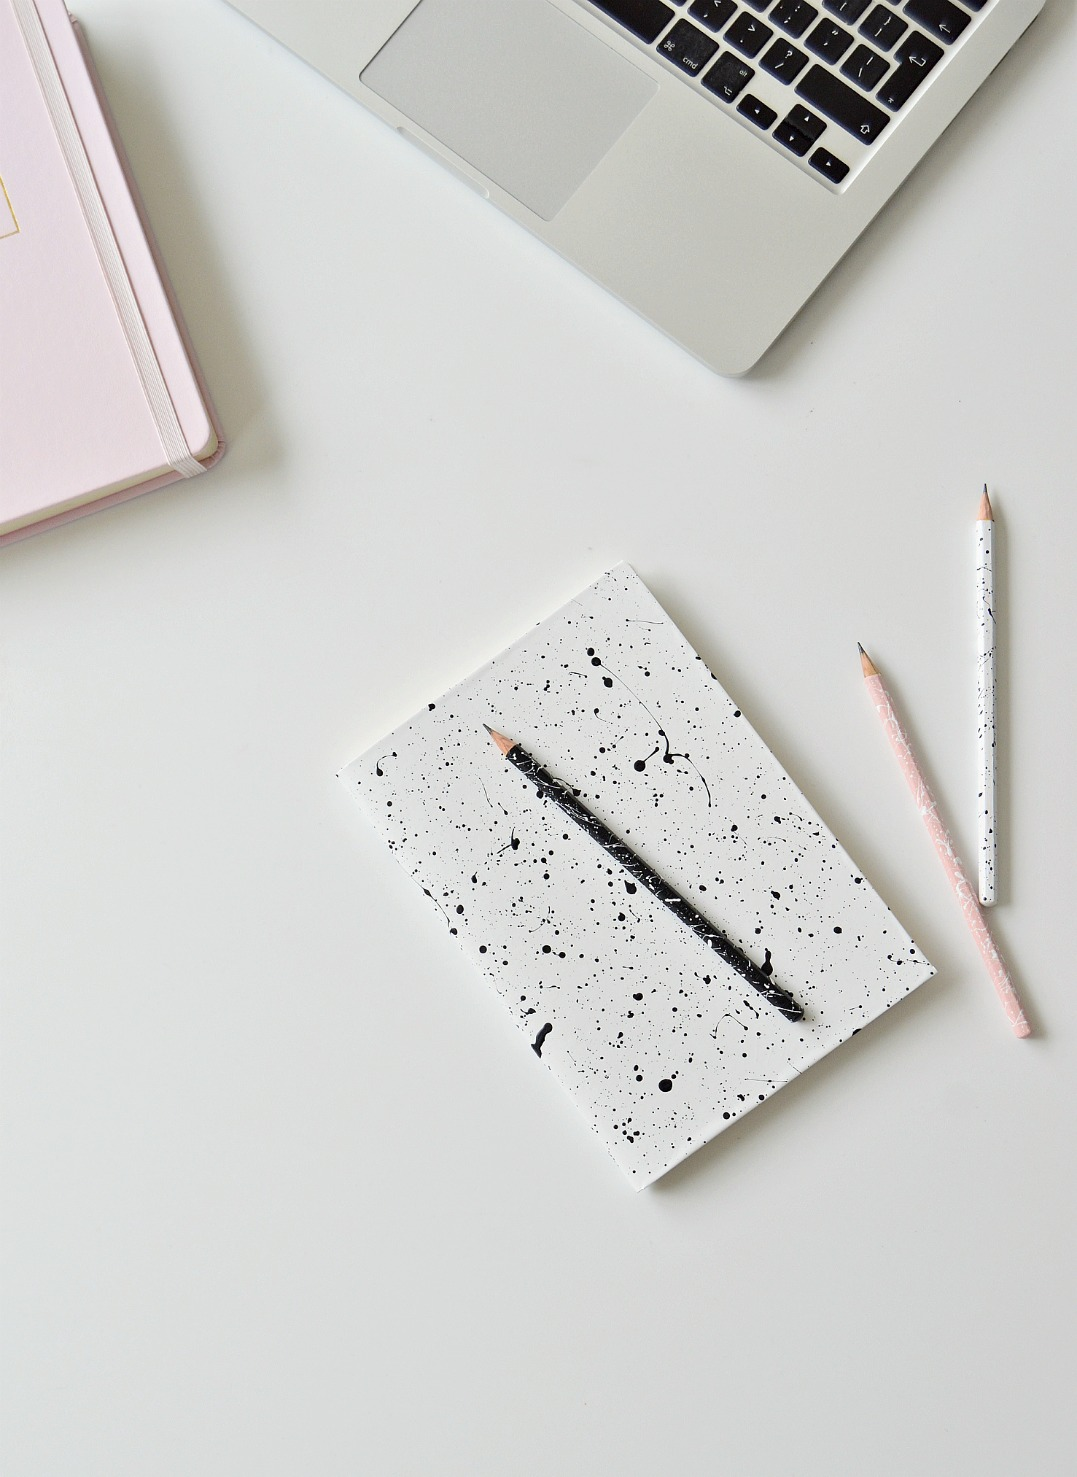 Diy Notebook Cover Ideas : Diy paint splatter notebook covers and pencils home